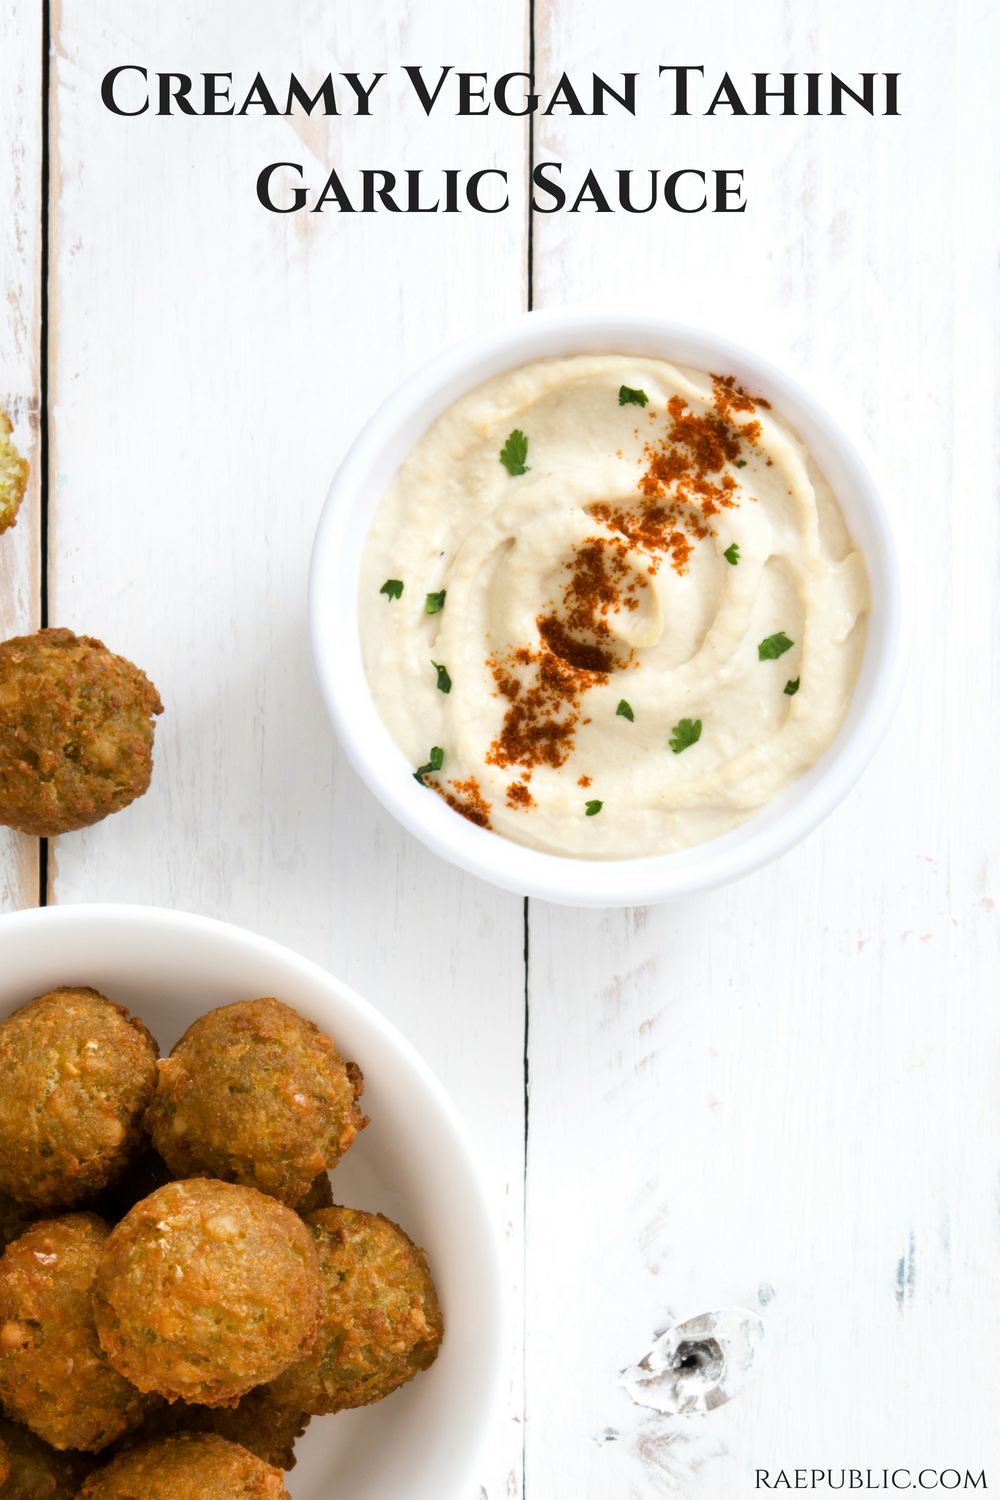 Easy vegan creamy tahini garlic sauce that takes minutes to make. Nutrually gluten free and dairy free makes this a tasty sauce for any vegan meal.